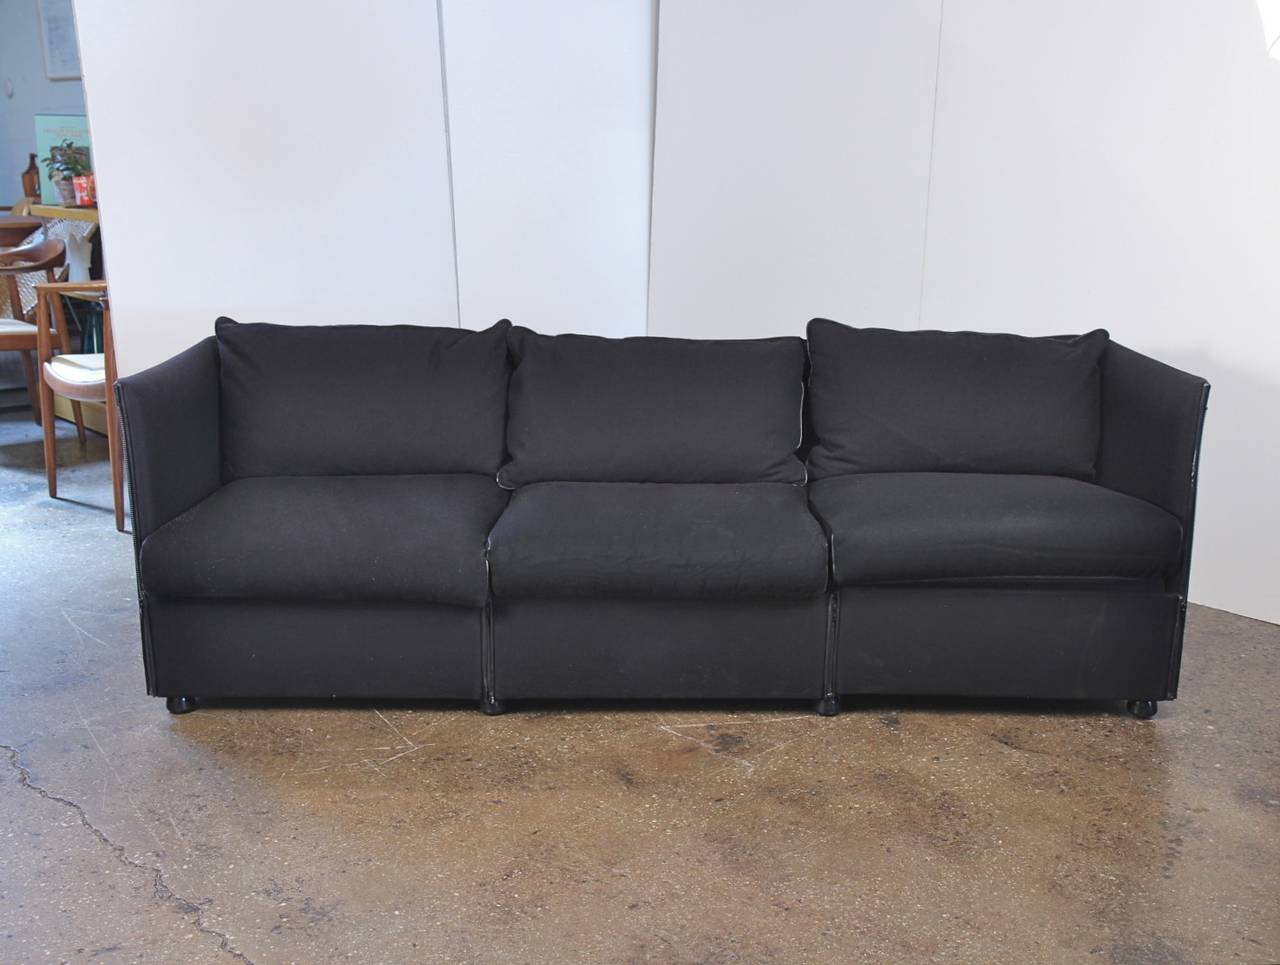 mario bellini sofa for cassina at 1stdibs. Black Bedroom Furniture Sets. Home Design Ideas